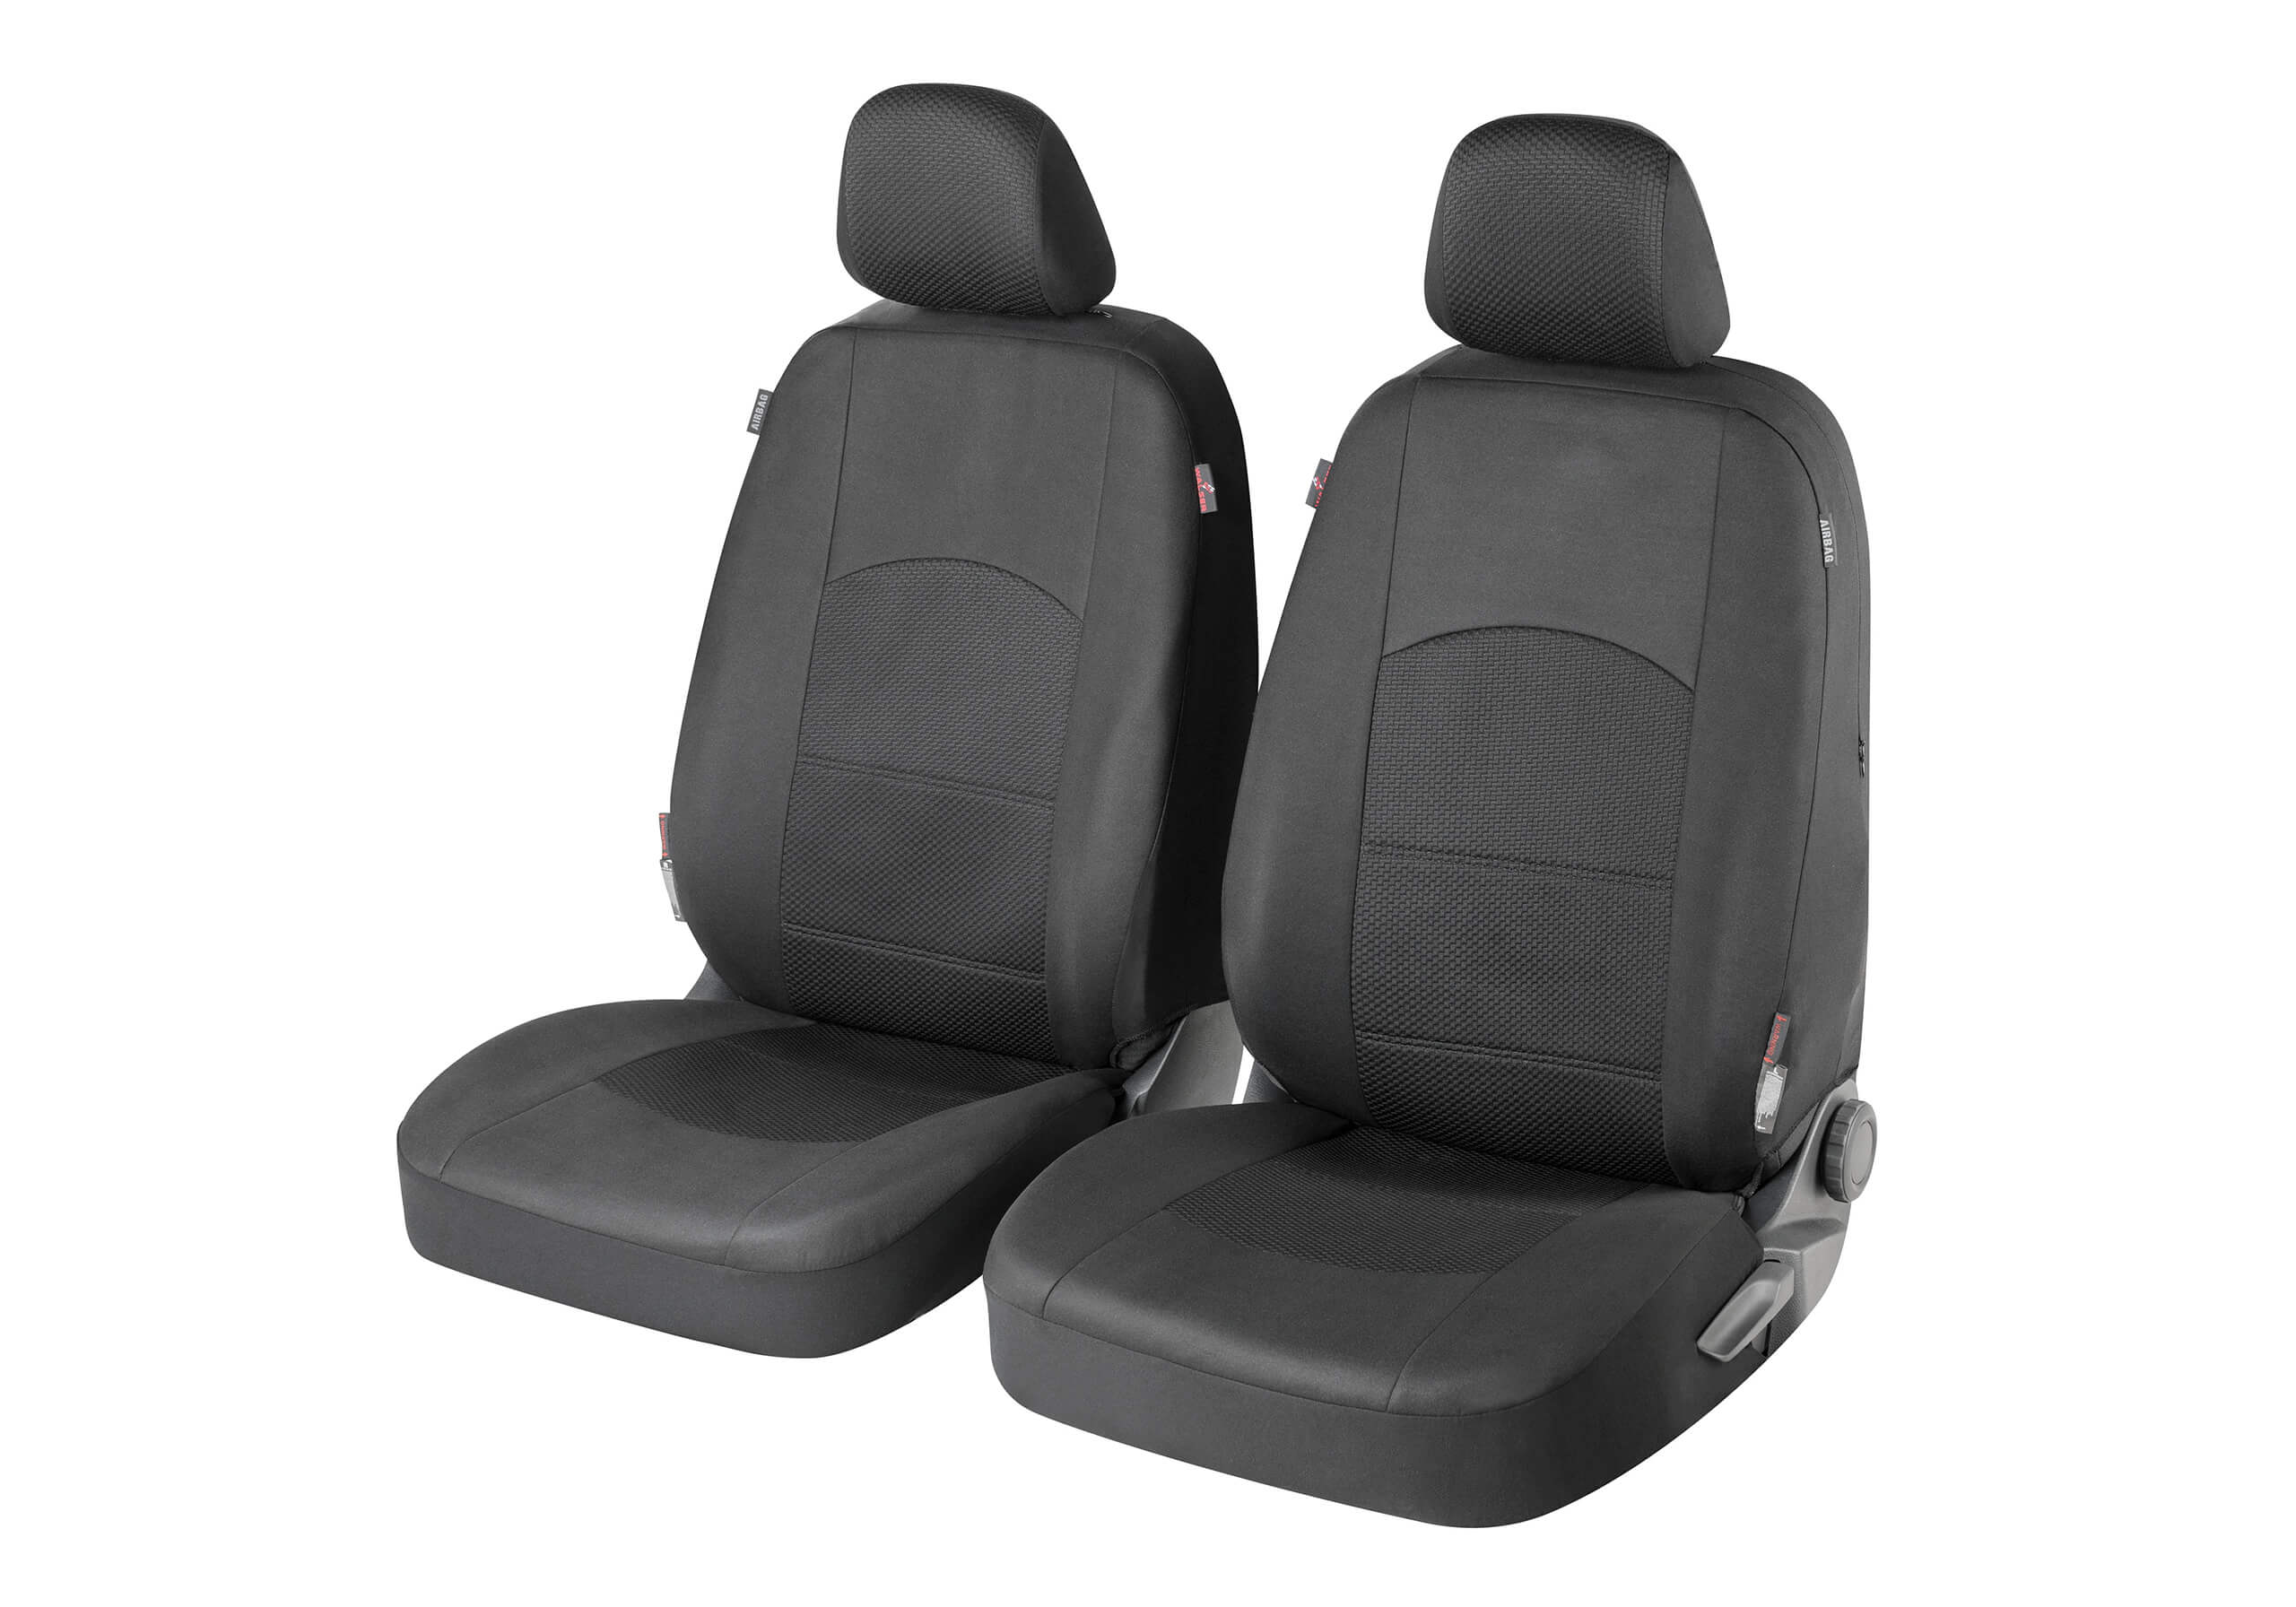 Honda Civic five door (2017 onwards):Walser ZIPP-IT seat covers, front seats only,  Derby black, 11846